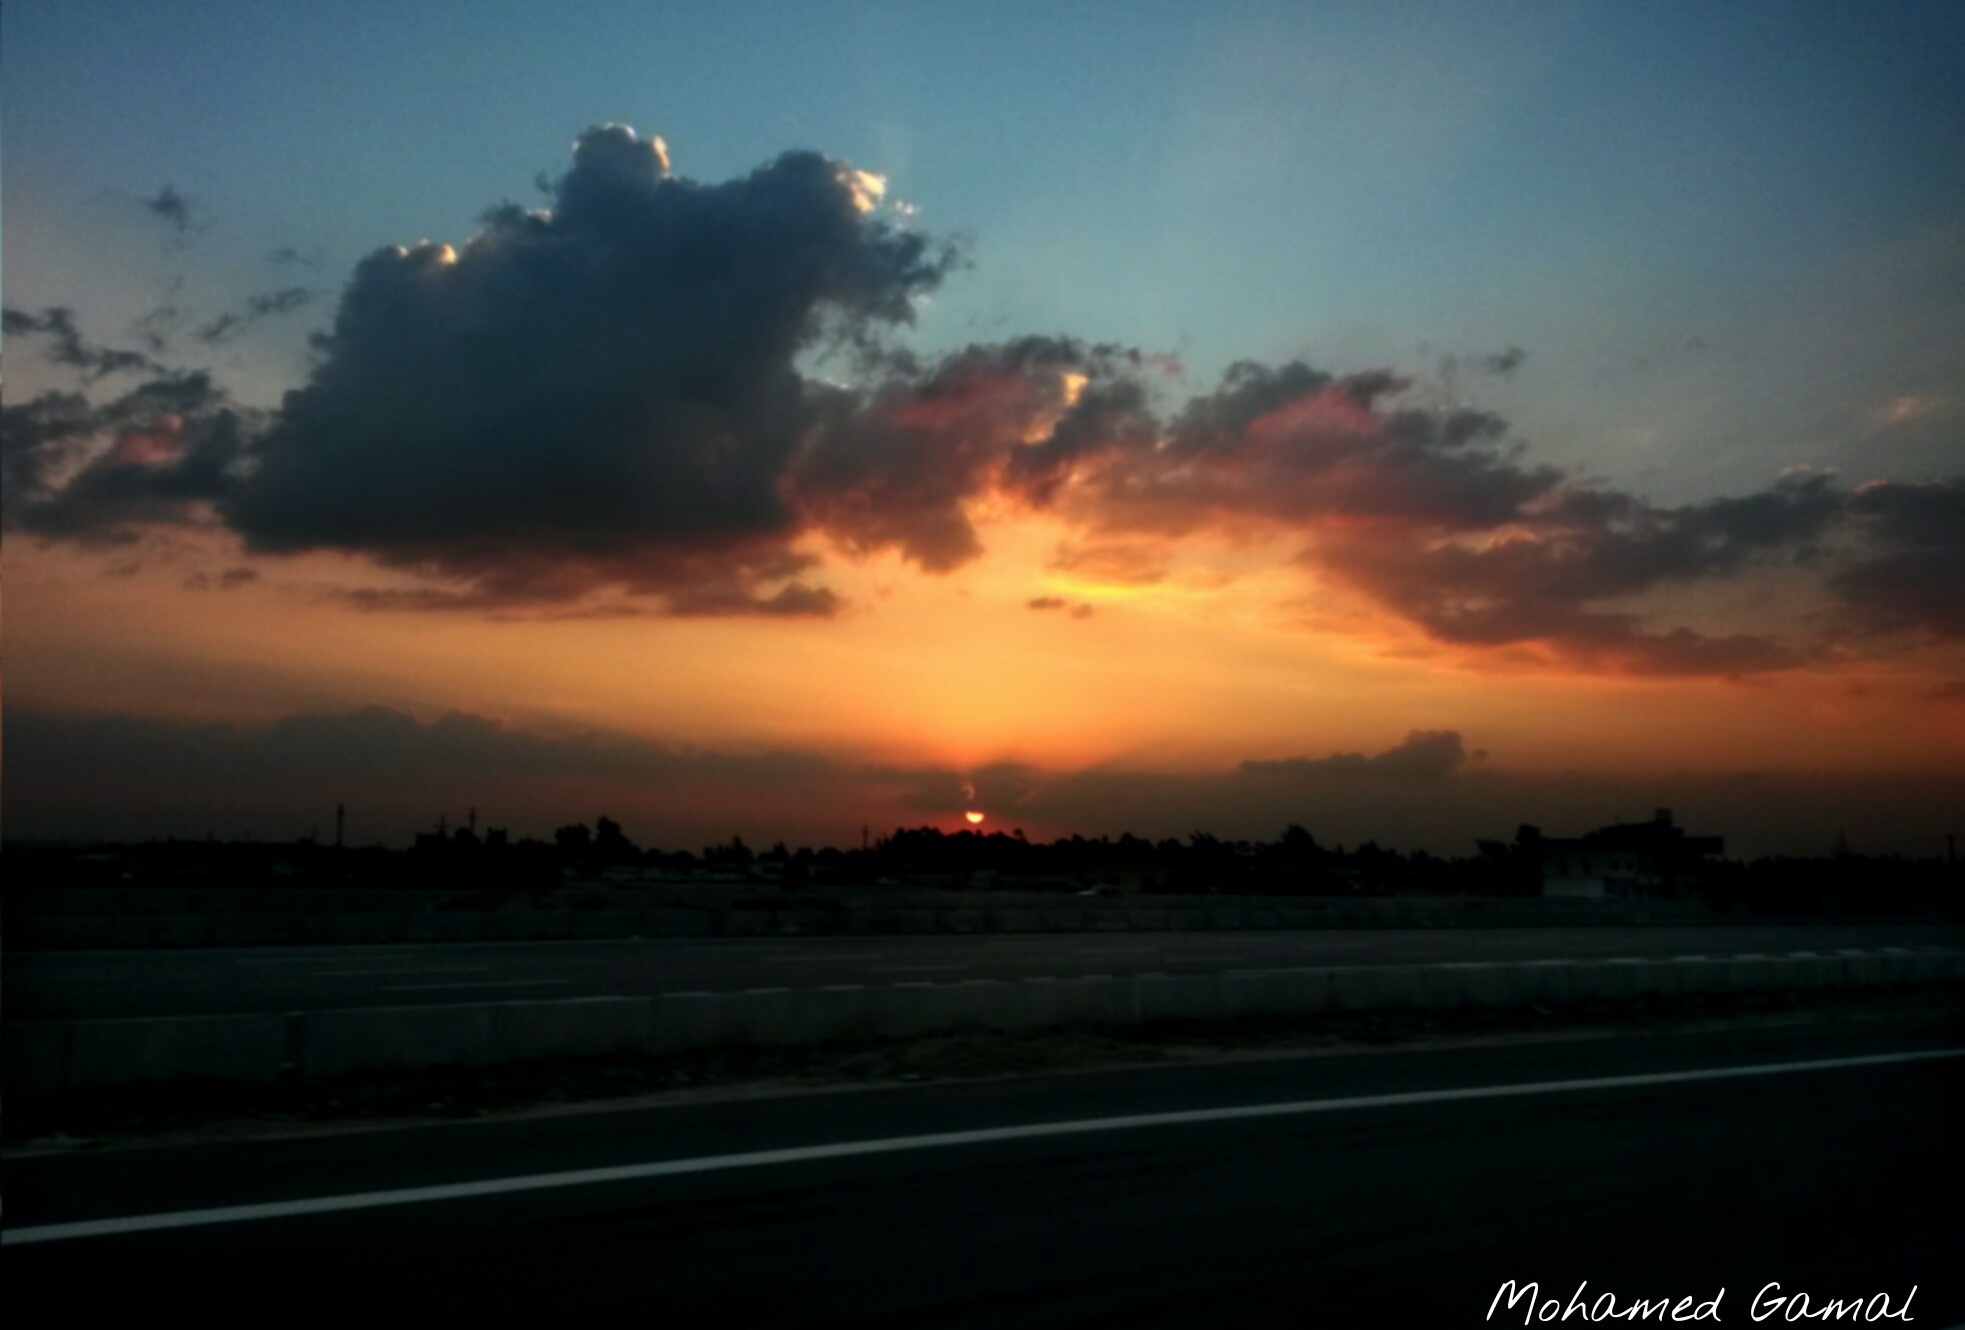 Untitled by Mohamed Gamal